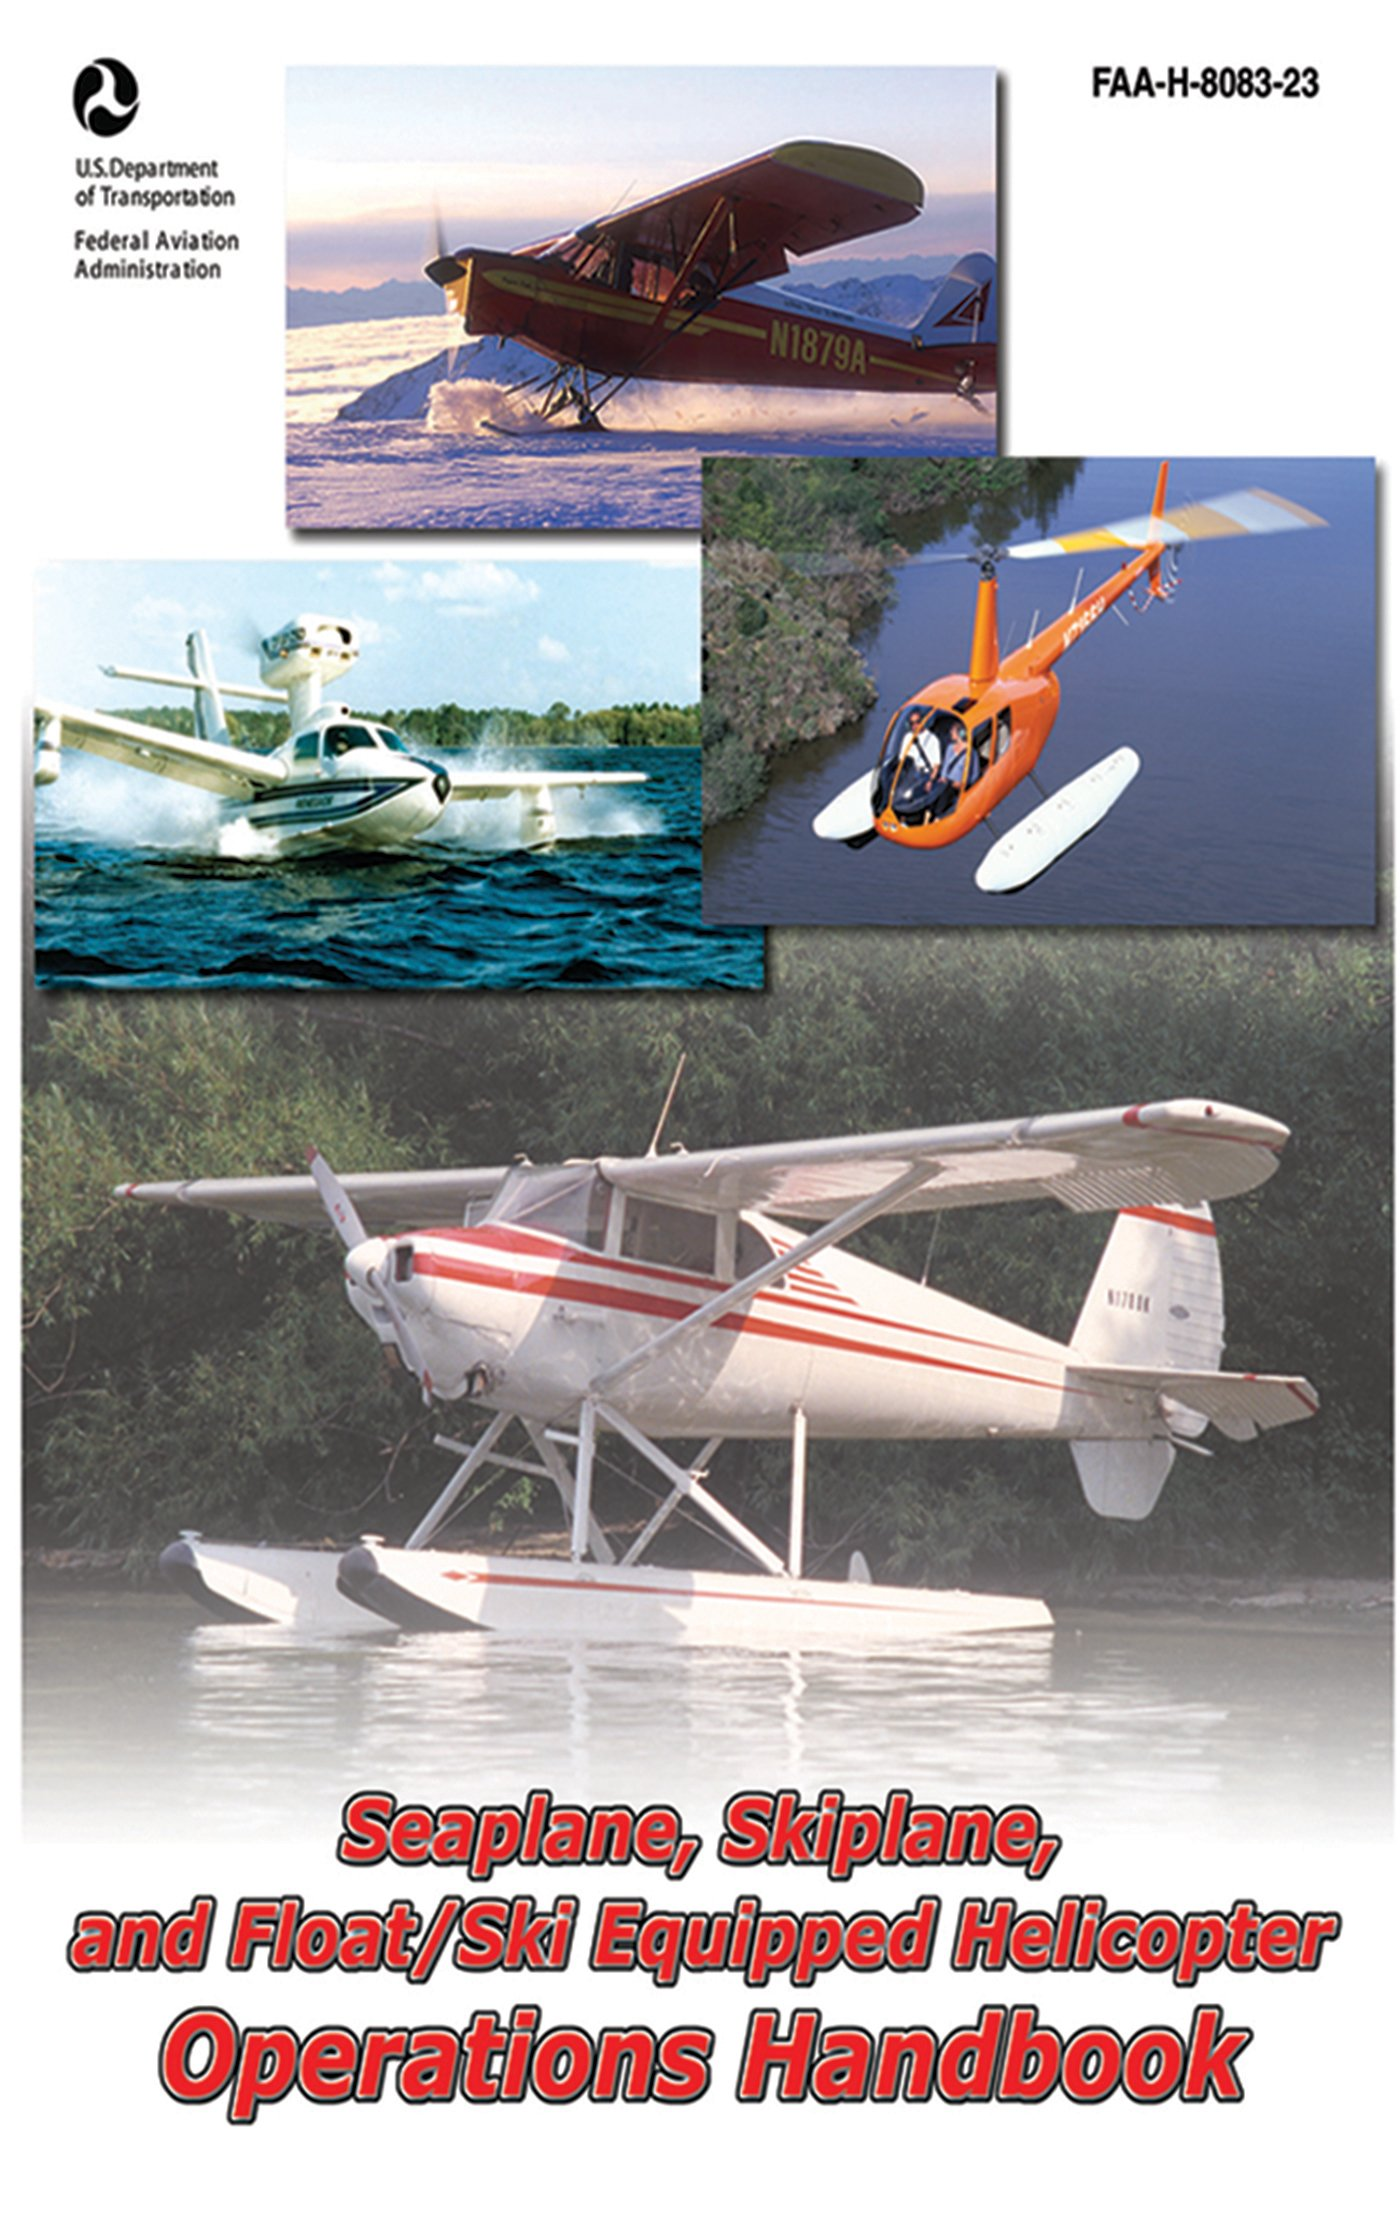 Seaplane skiplane and floatski equipped helicopter operations seaplane skiplane and floatski equipped helicopter operations handbook faa h 8083 23 faa handbooks series federal aviation administration fandeluxe Image collections